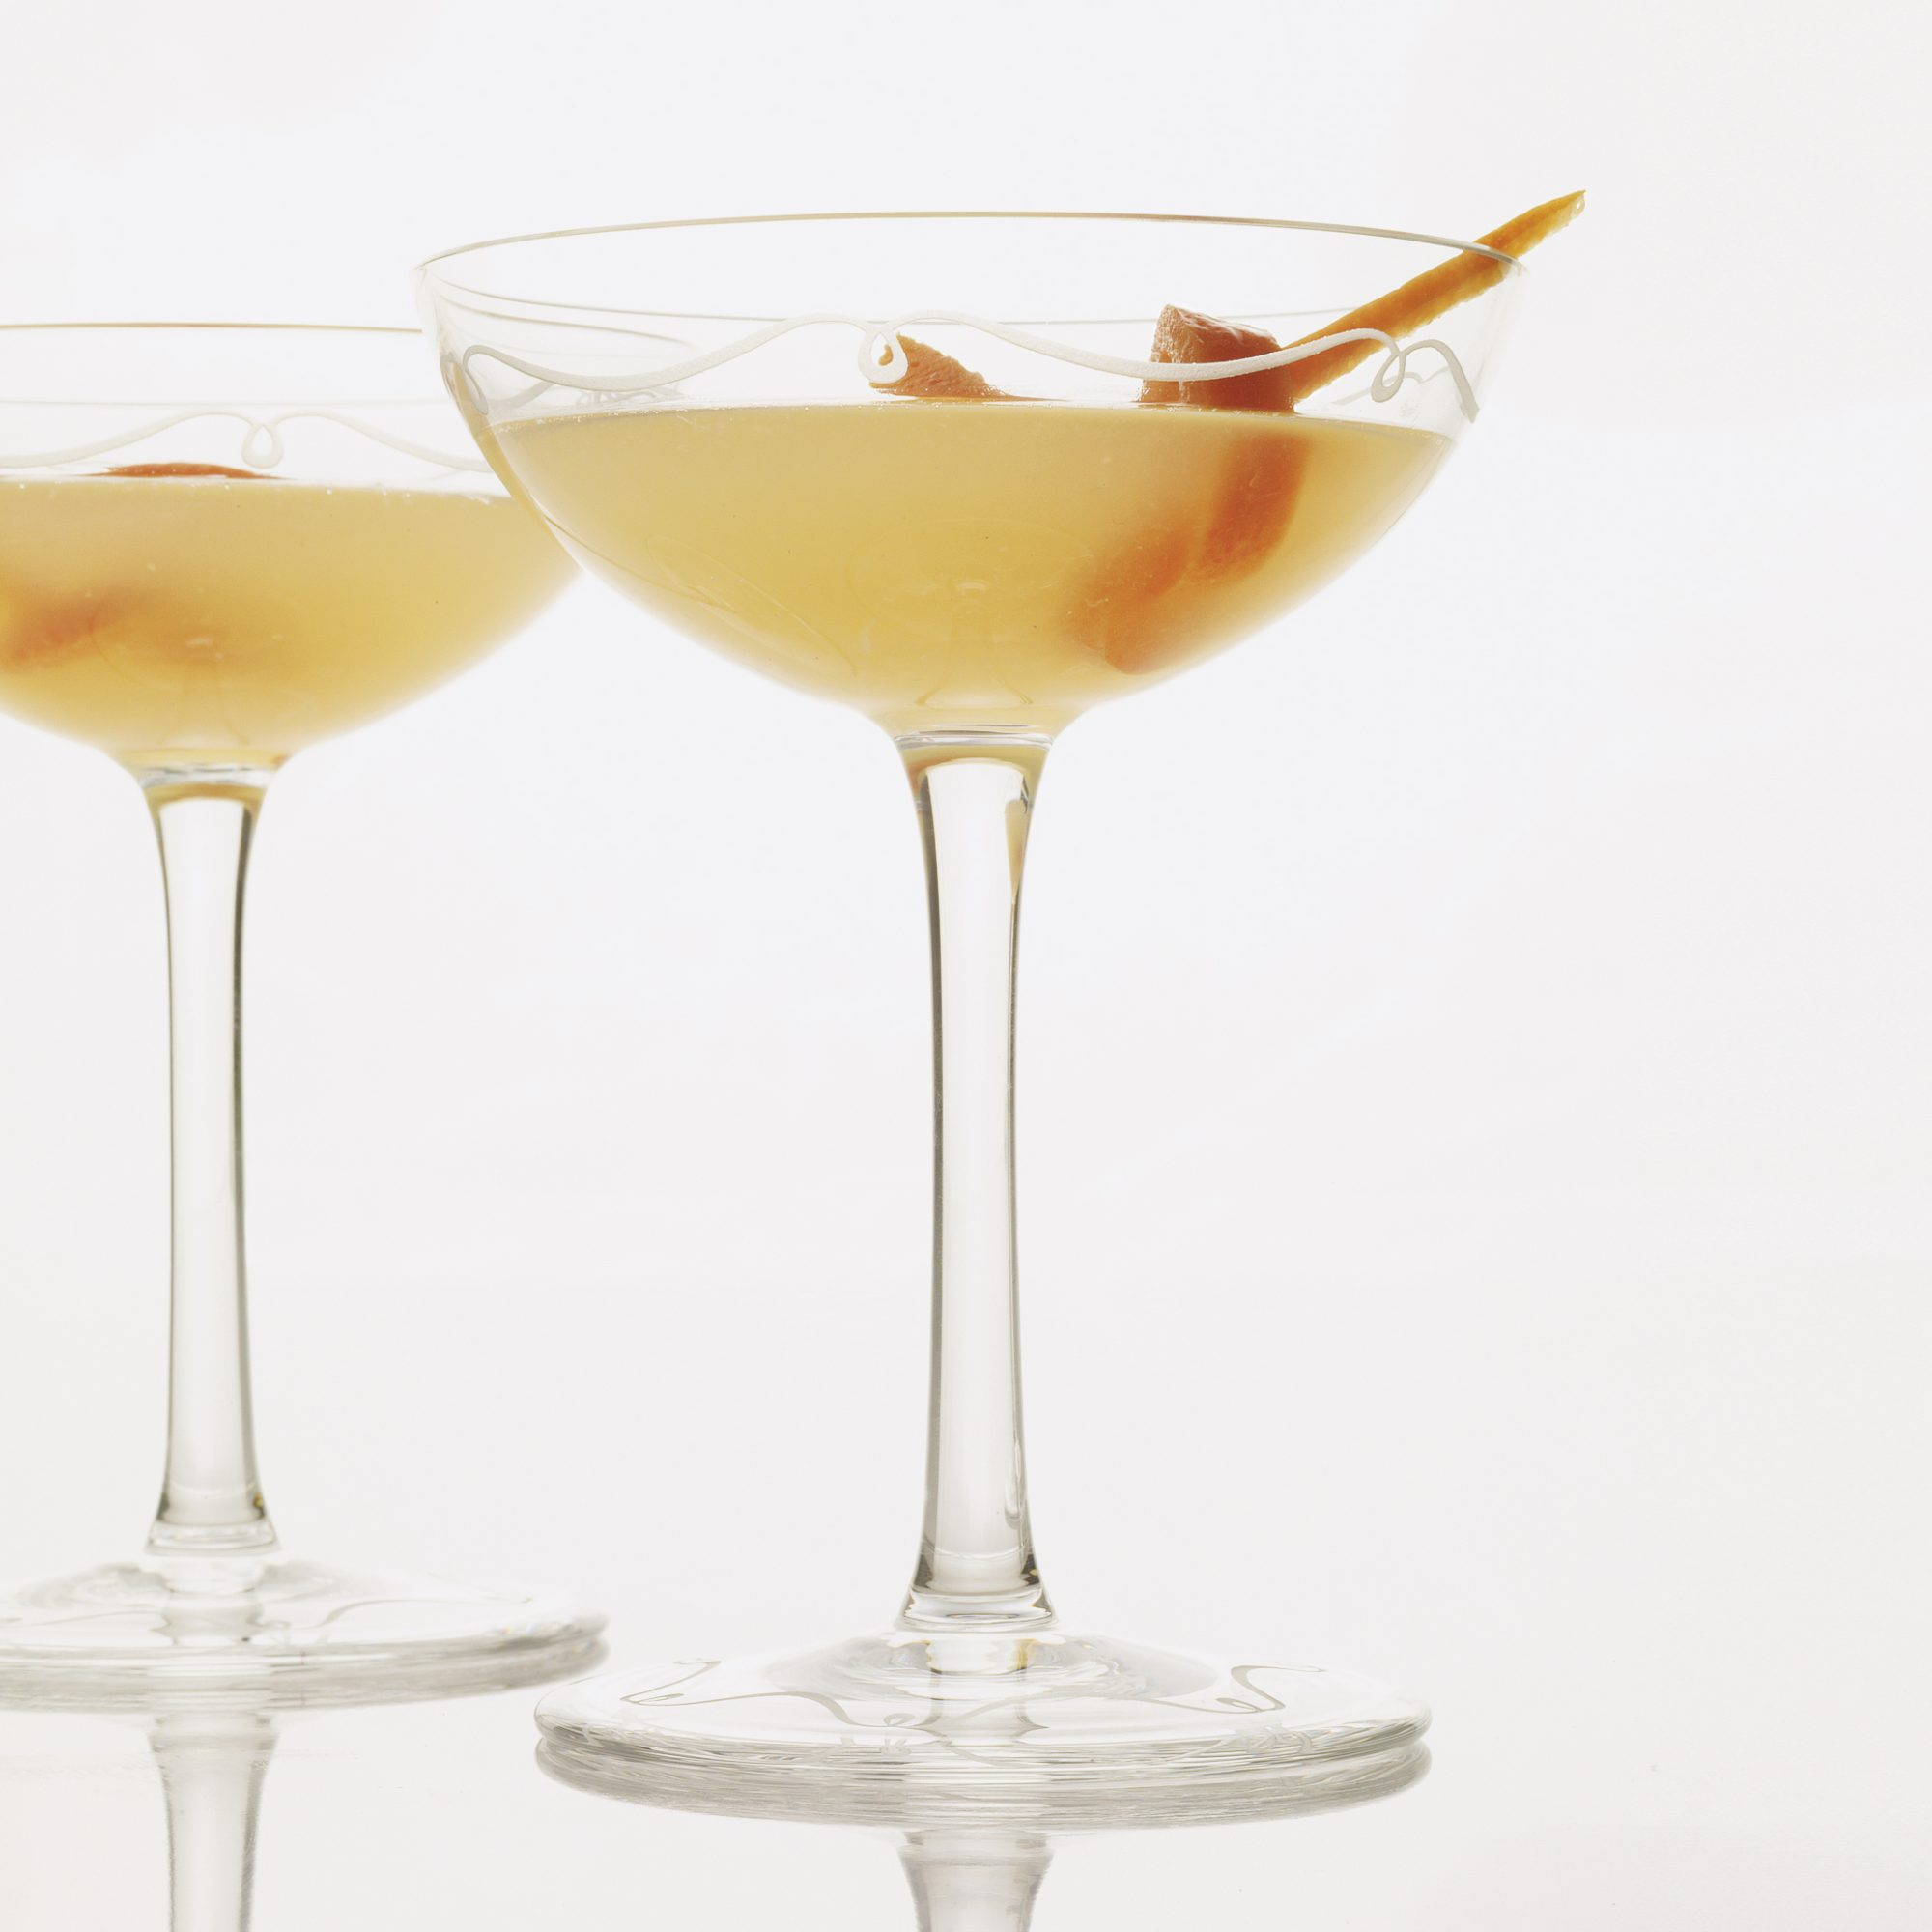 Cocktail Recipes: The Un-Usual Suspect